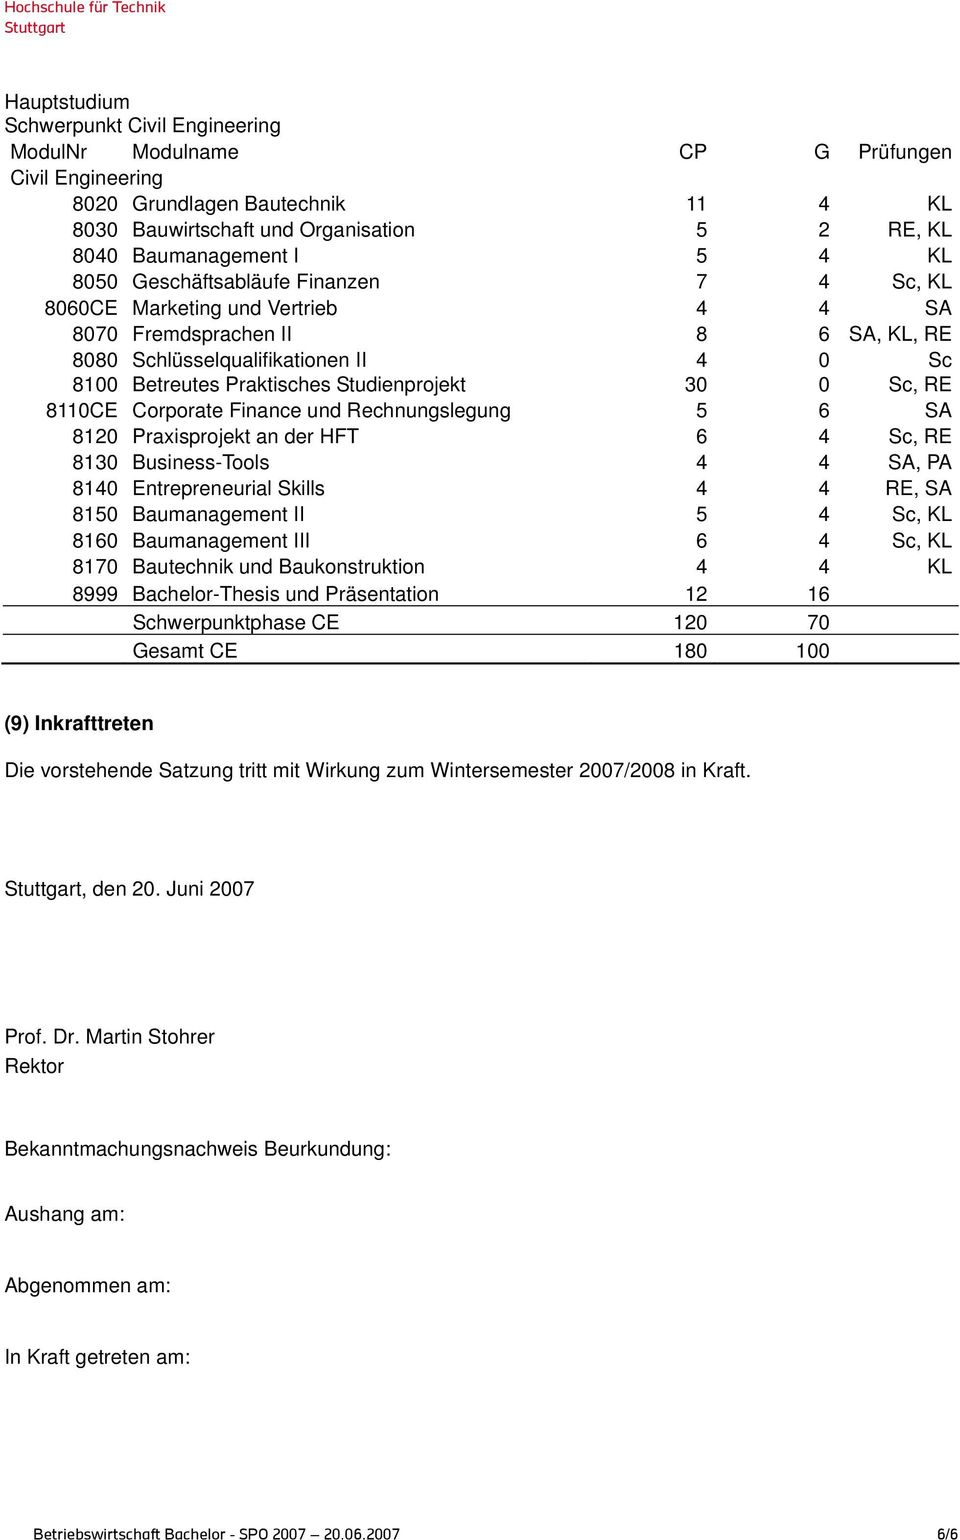 Sc, RE 8110CE Corporate Finance und Rechnungslegung 5 6 SA 8120 Praxisprojekt an der HFT 6 4 Sc, RE 8130 Business-Tools 4 4 SA, PA 8140 Entrepreneurial Skills 4 4 RE, SA 8150 Baumanagement II 5 4 Sc,